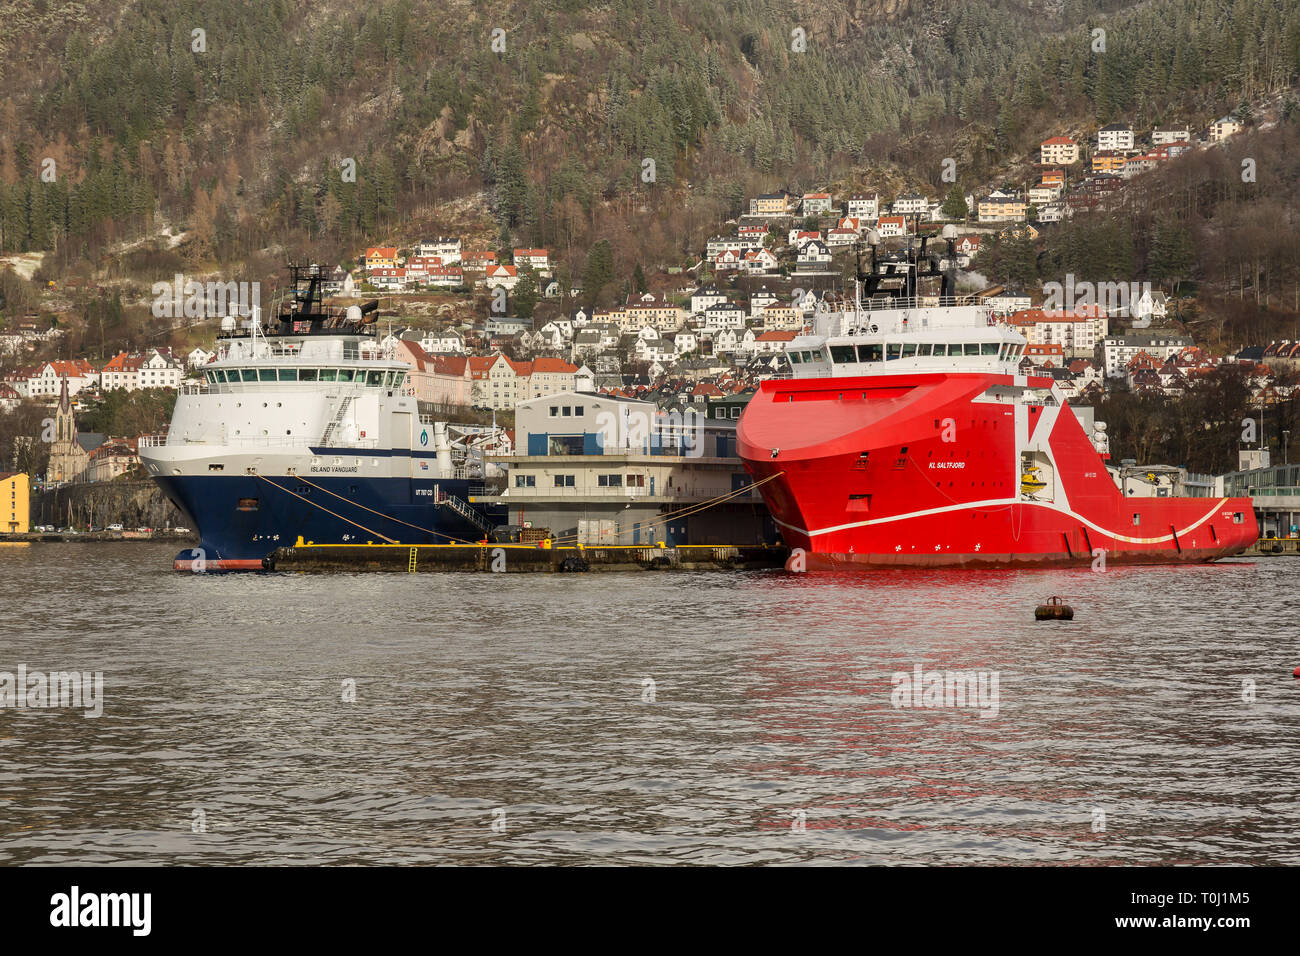 The Norwegian Off Shore Supply Ship KL Saltfjord and the Norwegian tug boat Island Vanguard, in the sea port of Bergen in Norway. - Stock Image